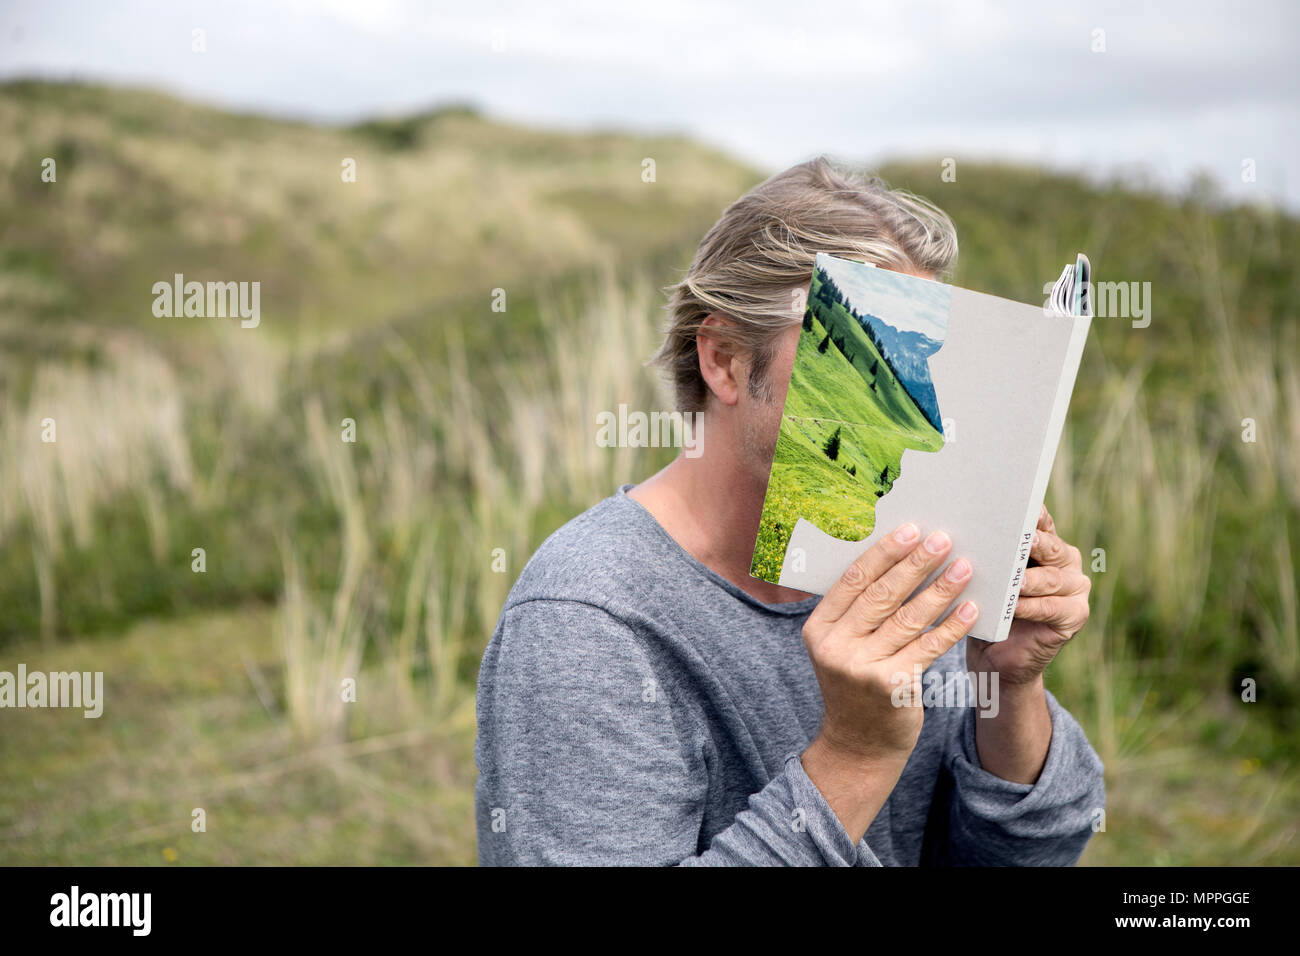 Man reading story book in the dunes, covering his face - Stock Image